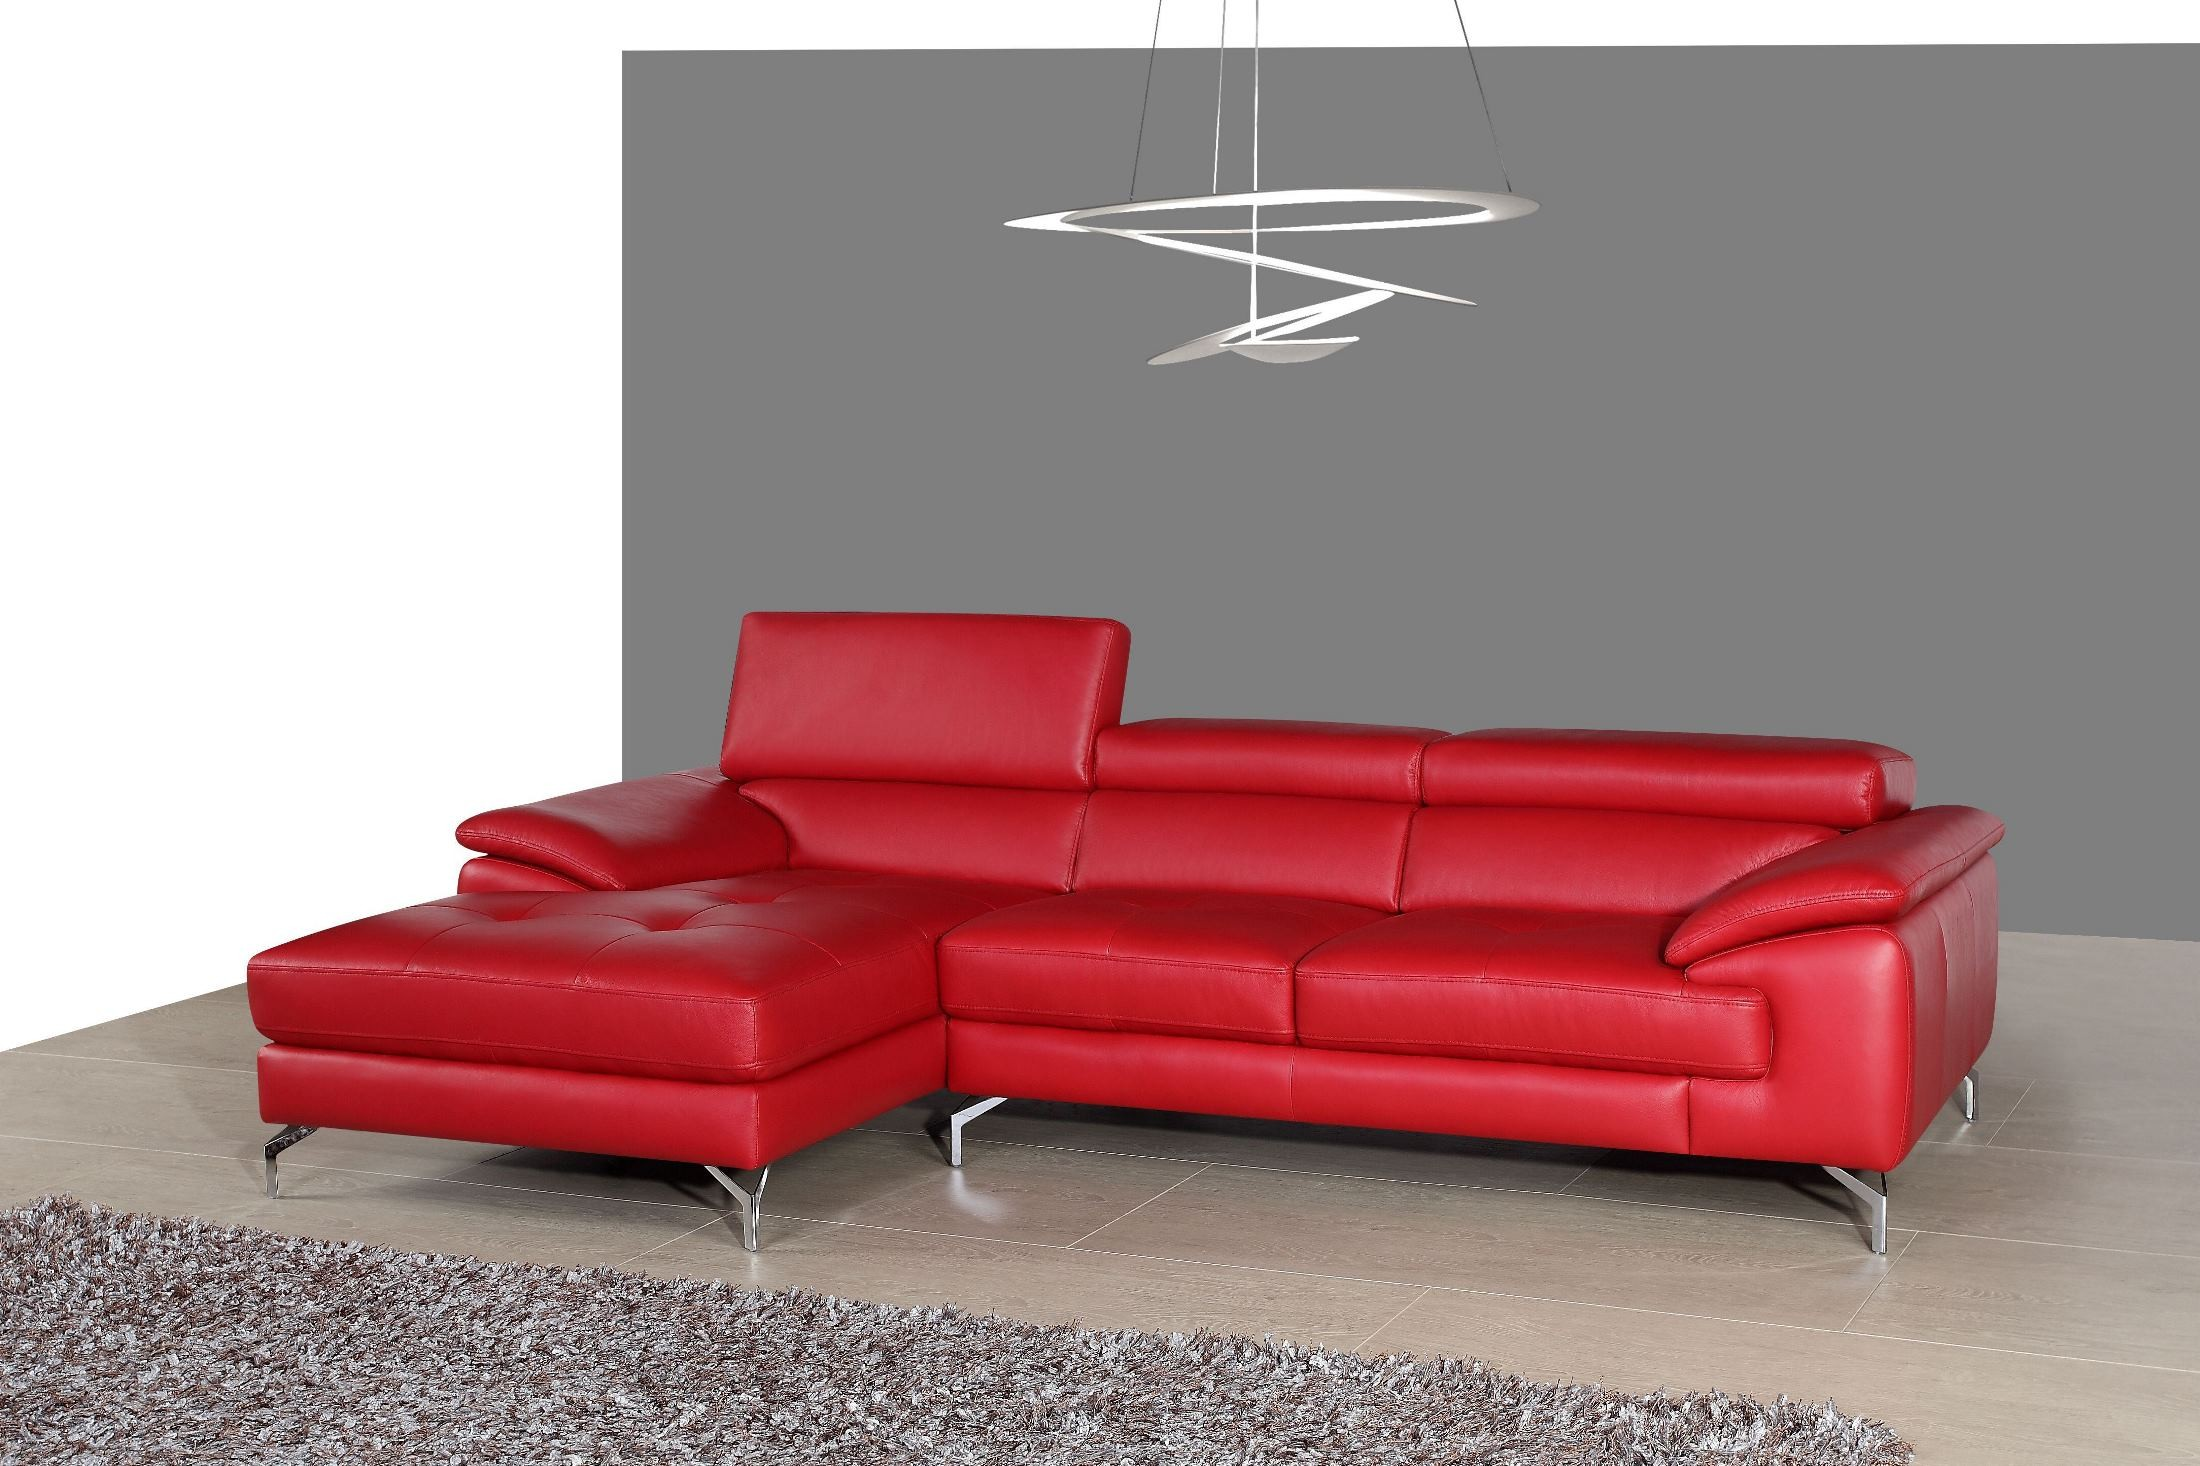 A973b red italian leather mini laf chaise sectional from j for Italian leather sectional sofa chaise